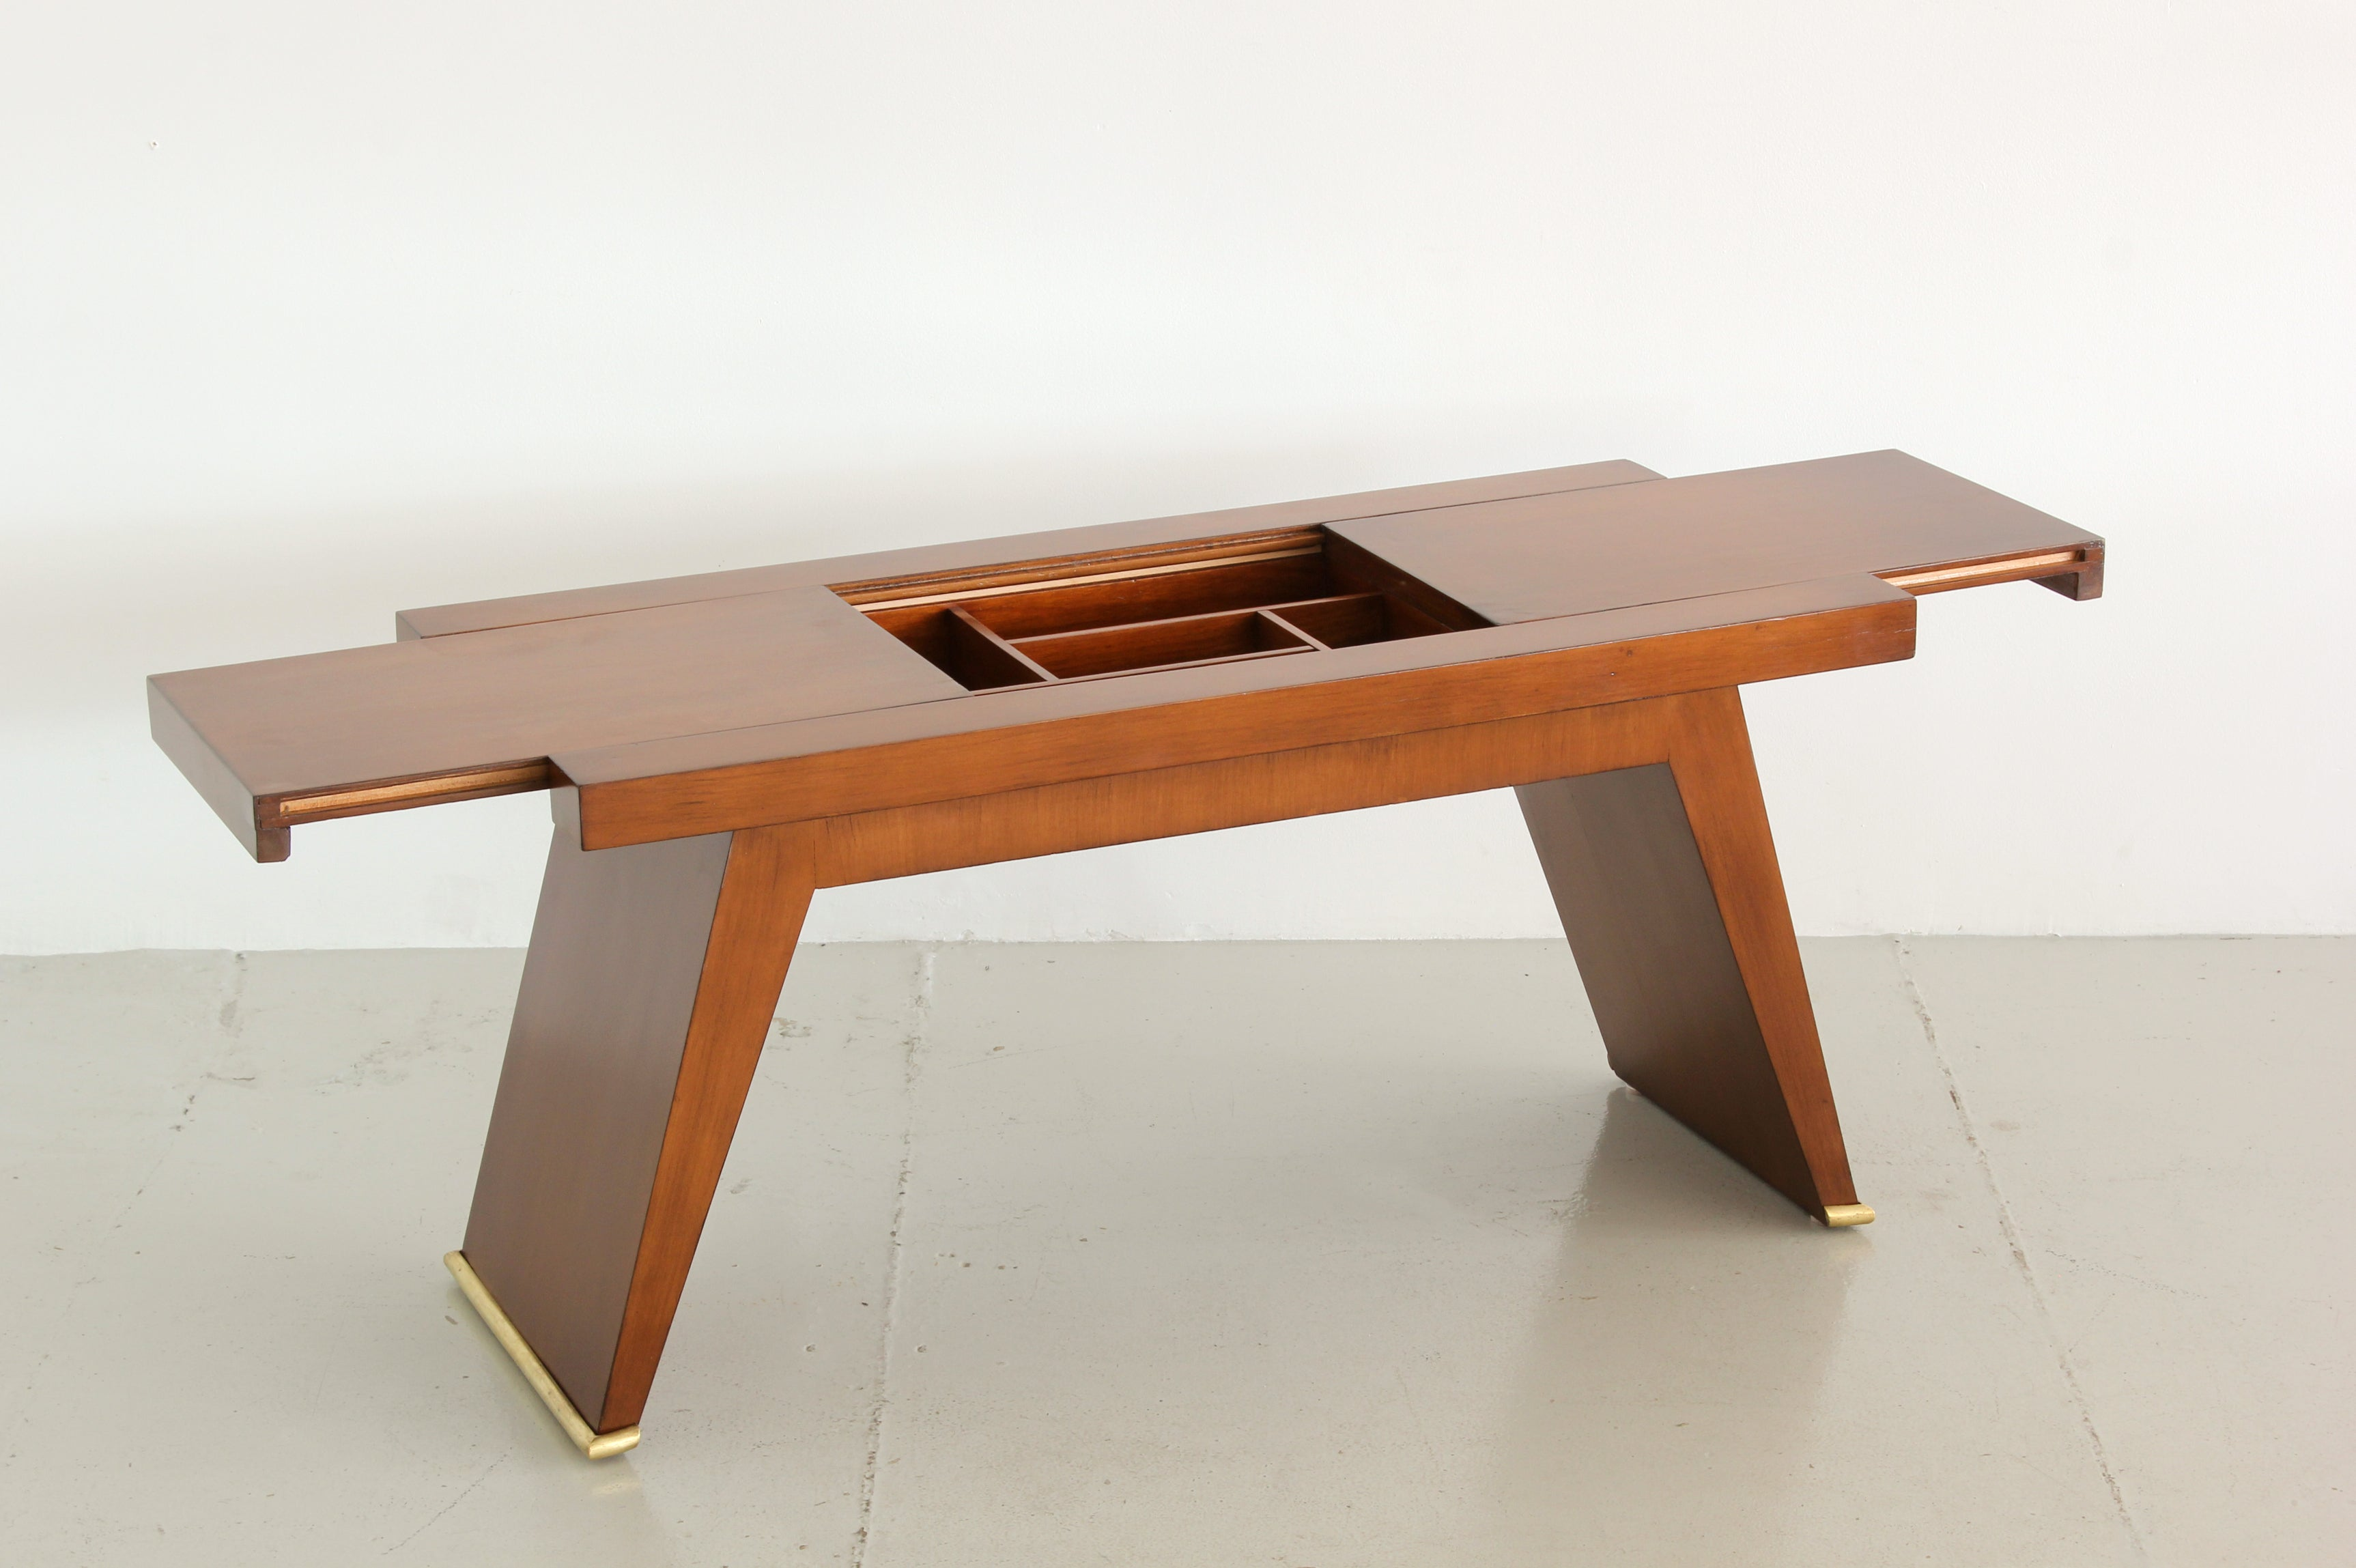 French Coffee Table with Sliding Tops Orange Furniture Los Angeles